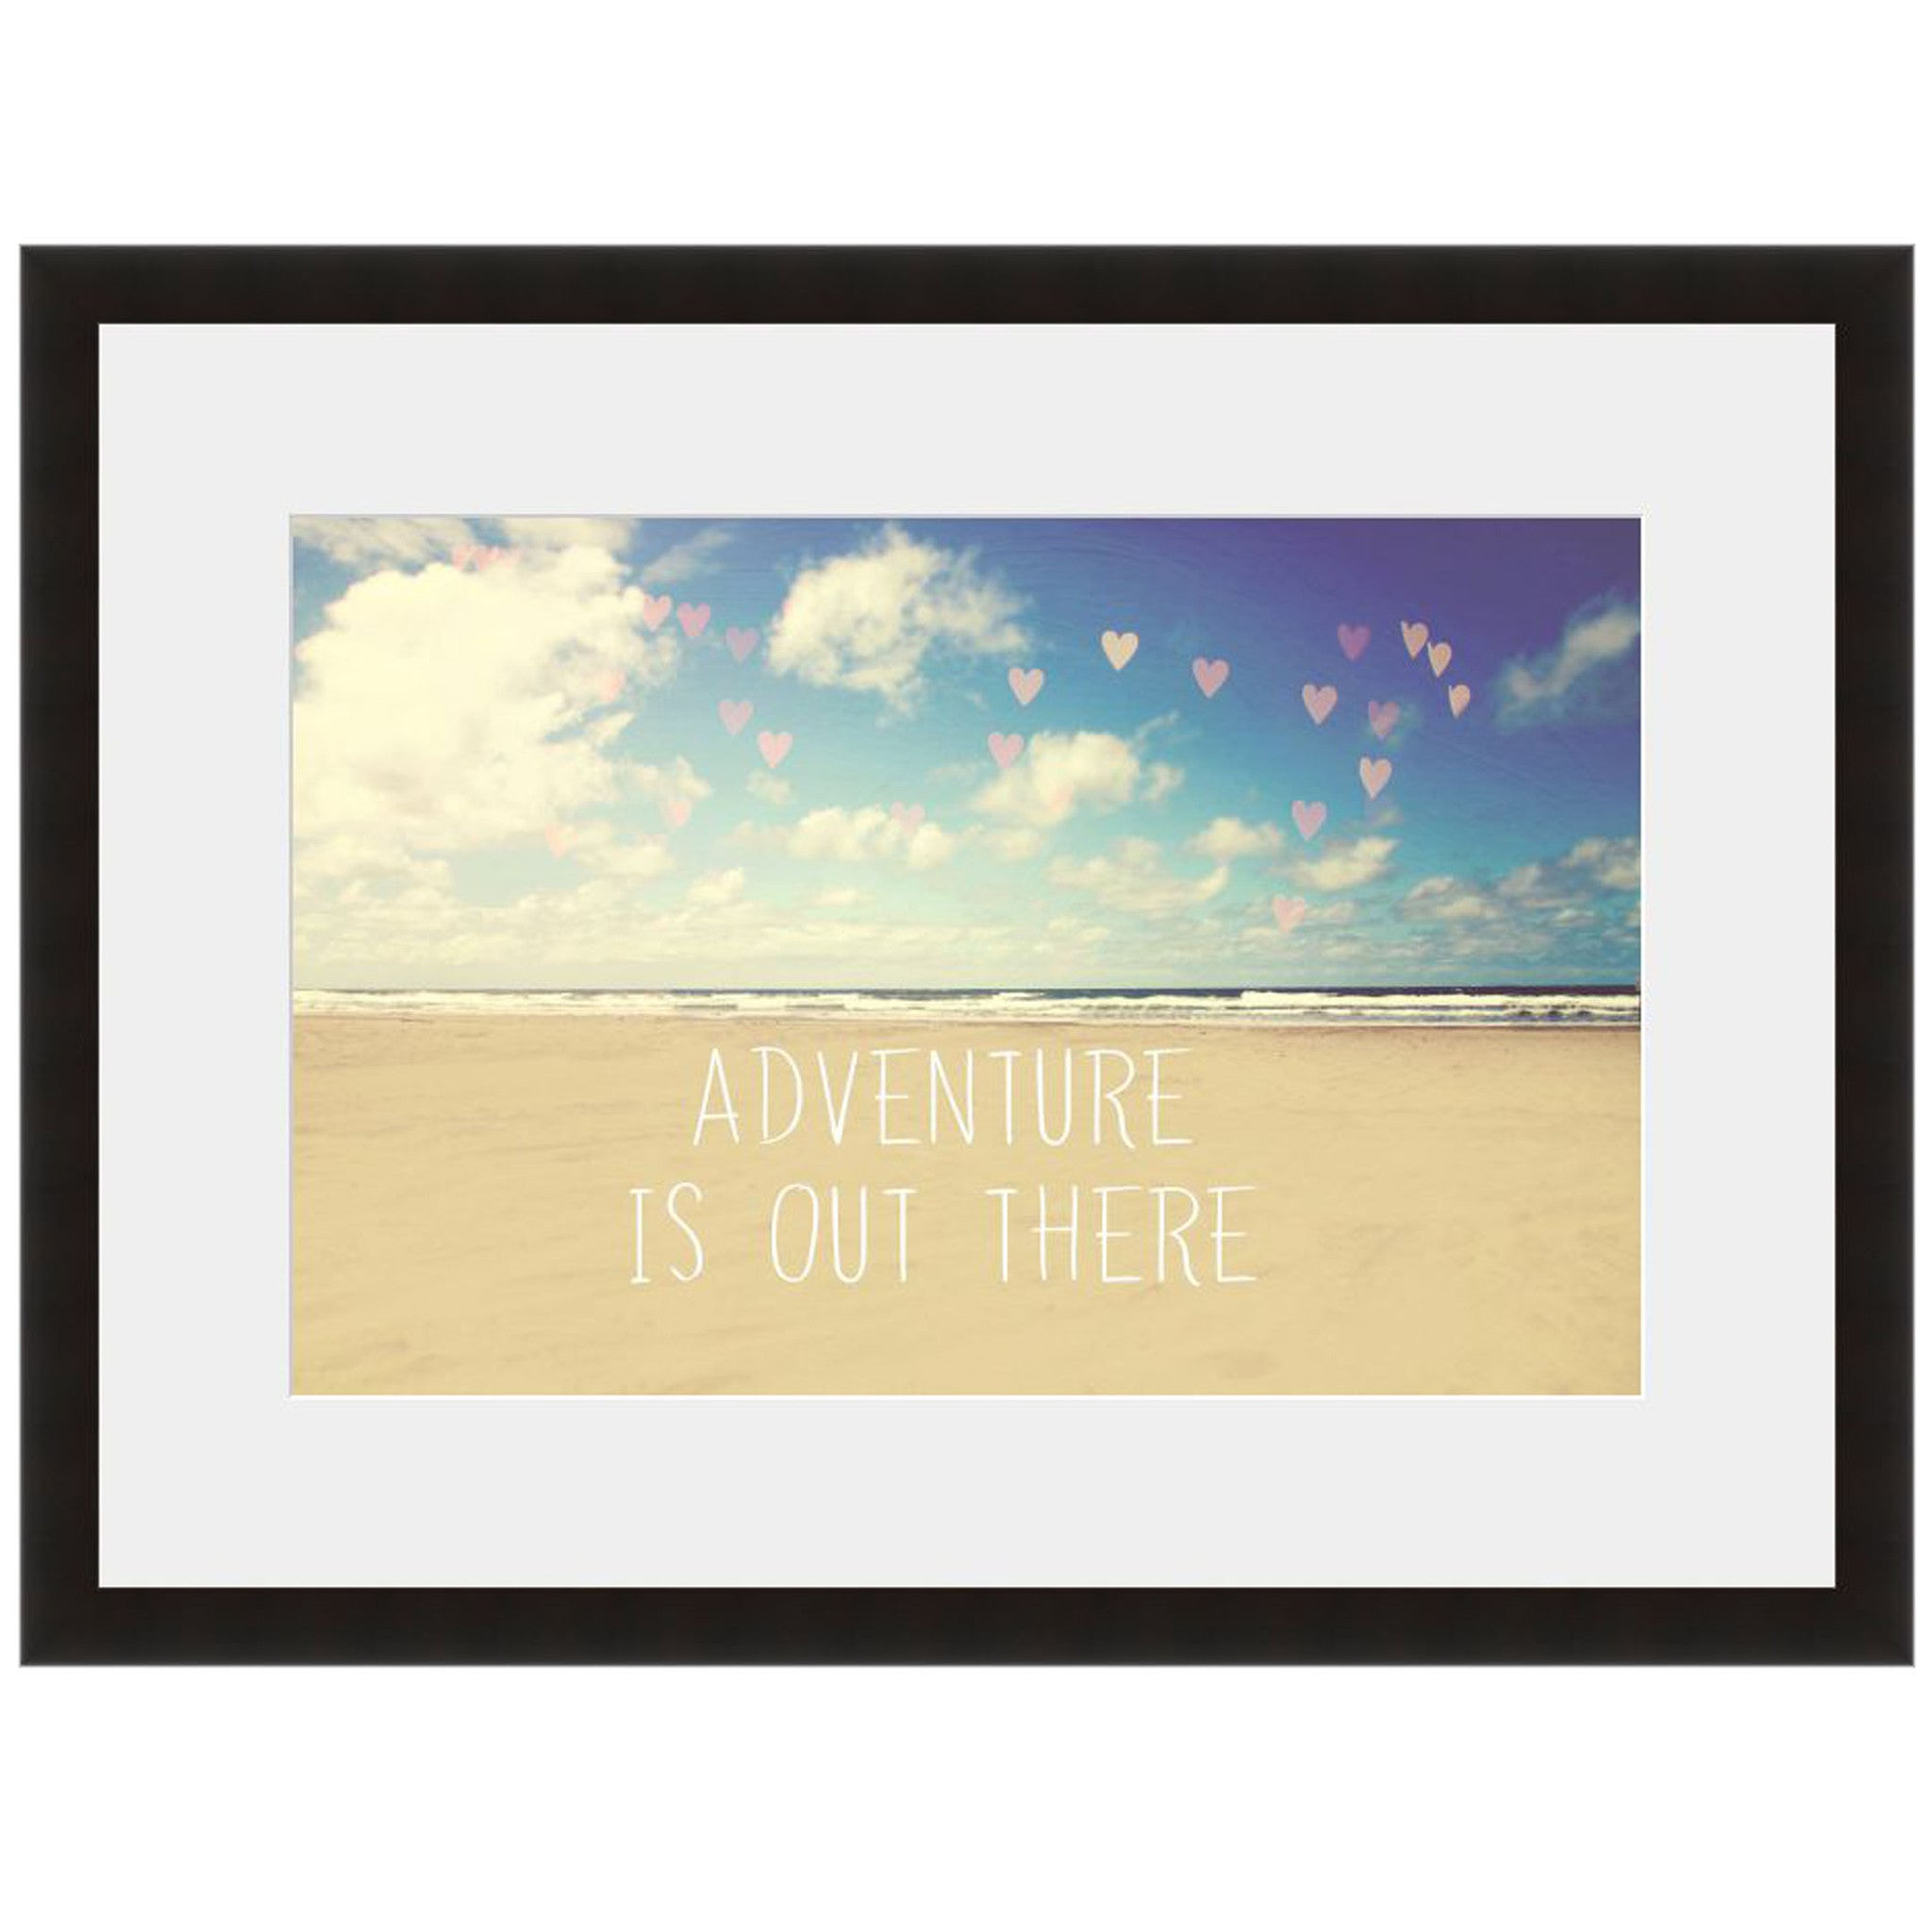 Adventure Is Out There - Fine Art Photograph by Sylvia Cook - Framed ...